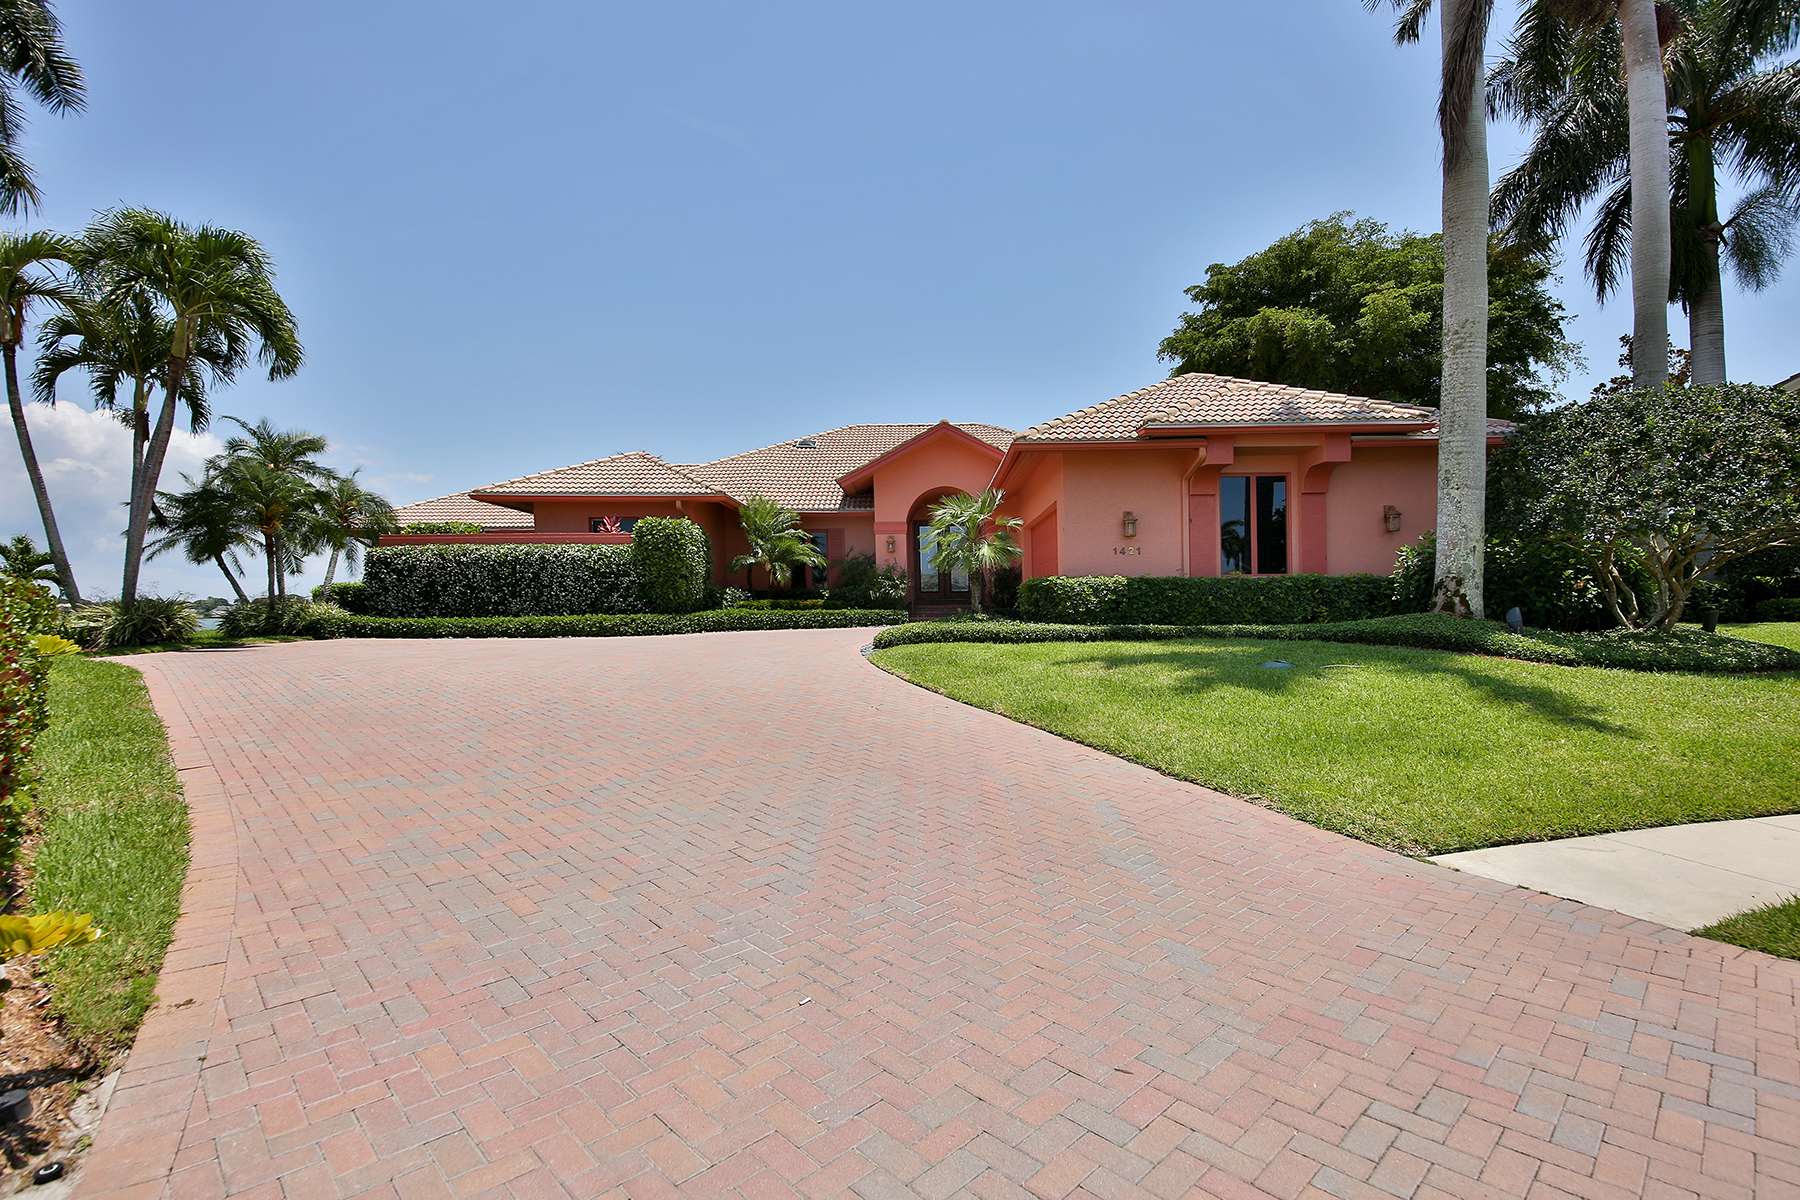 Single Family Home for Sale at MARCO ISLAND 1421 Forrest Ct Marco Island, Florida, 34145 United States